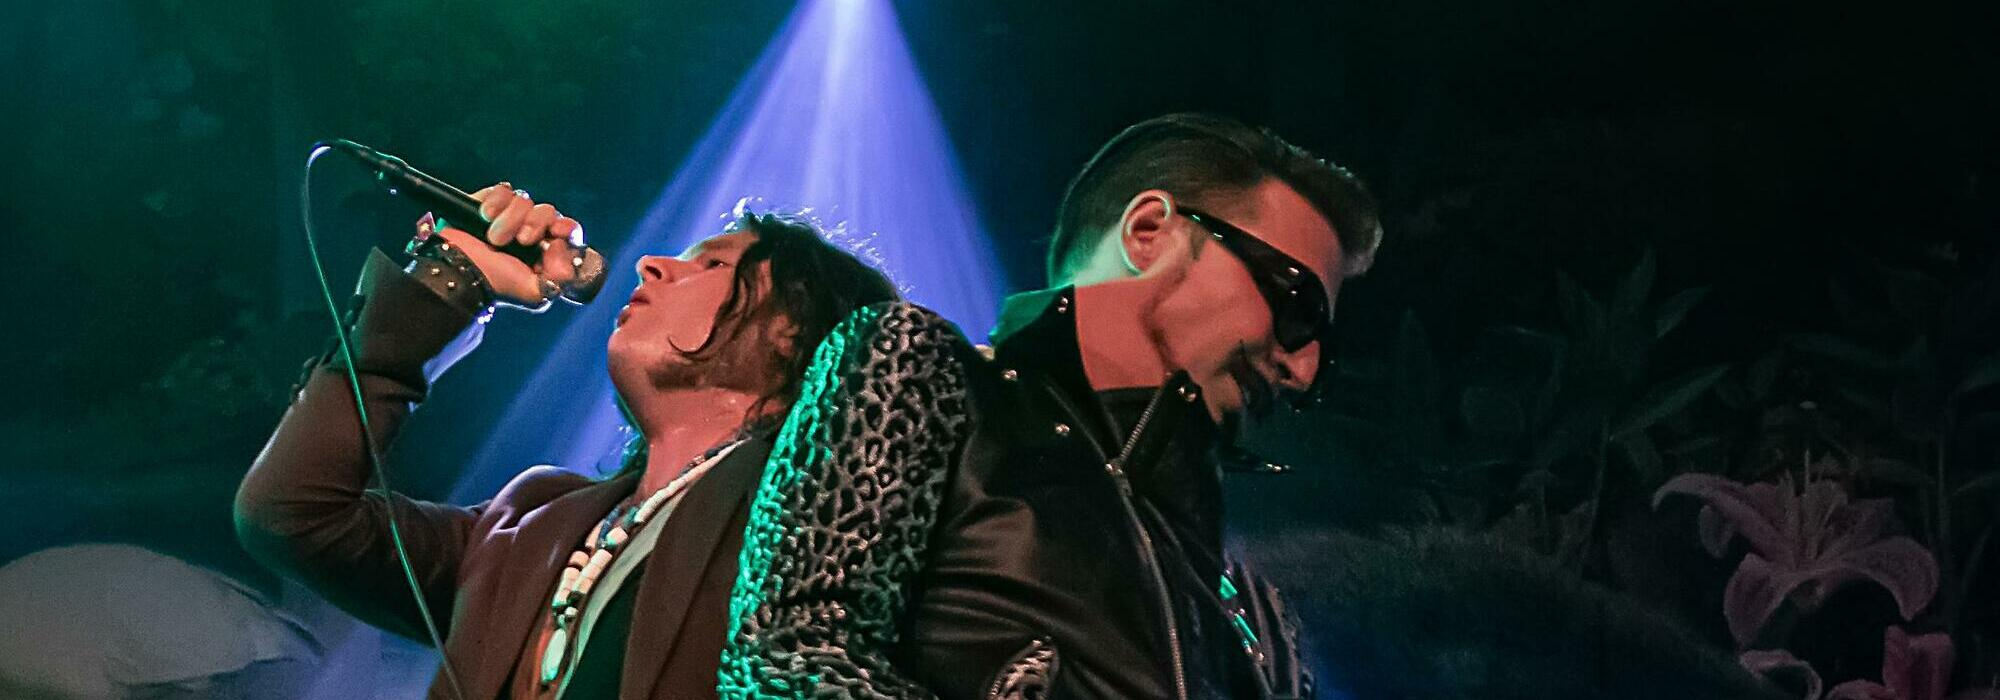 A Rival Sons live event